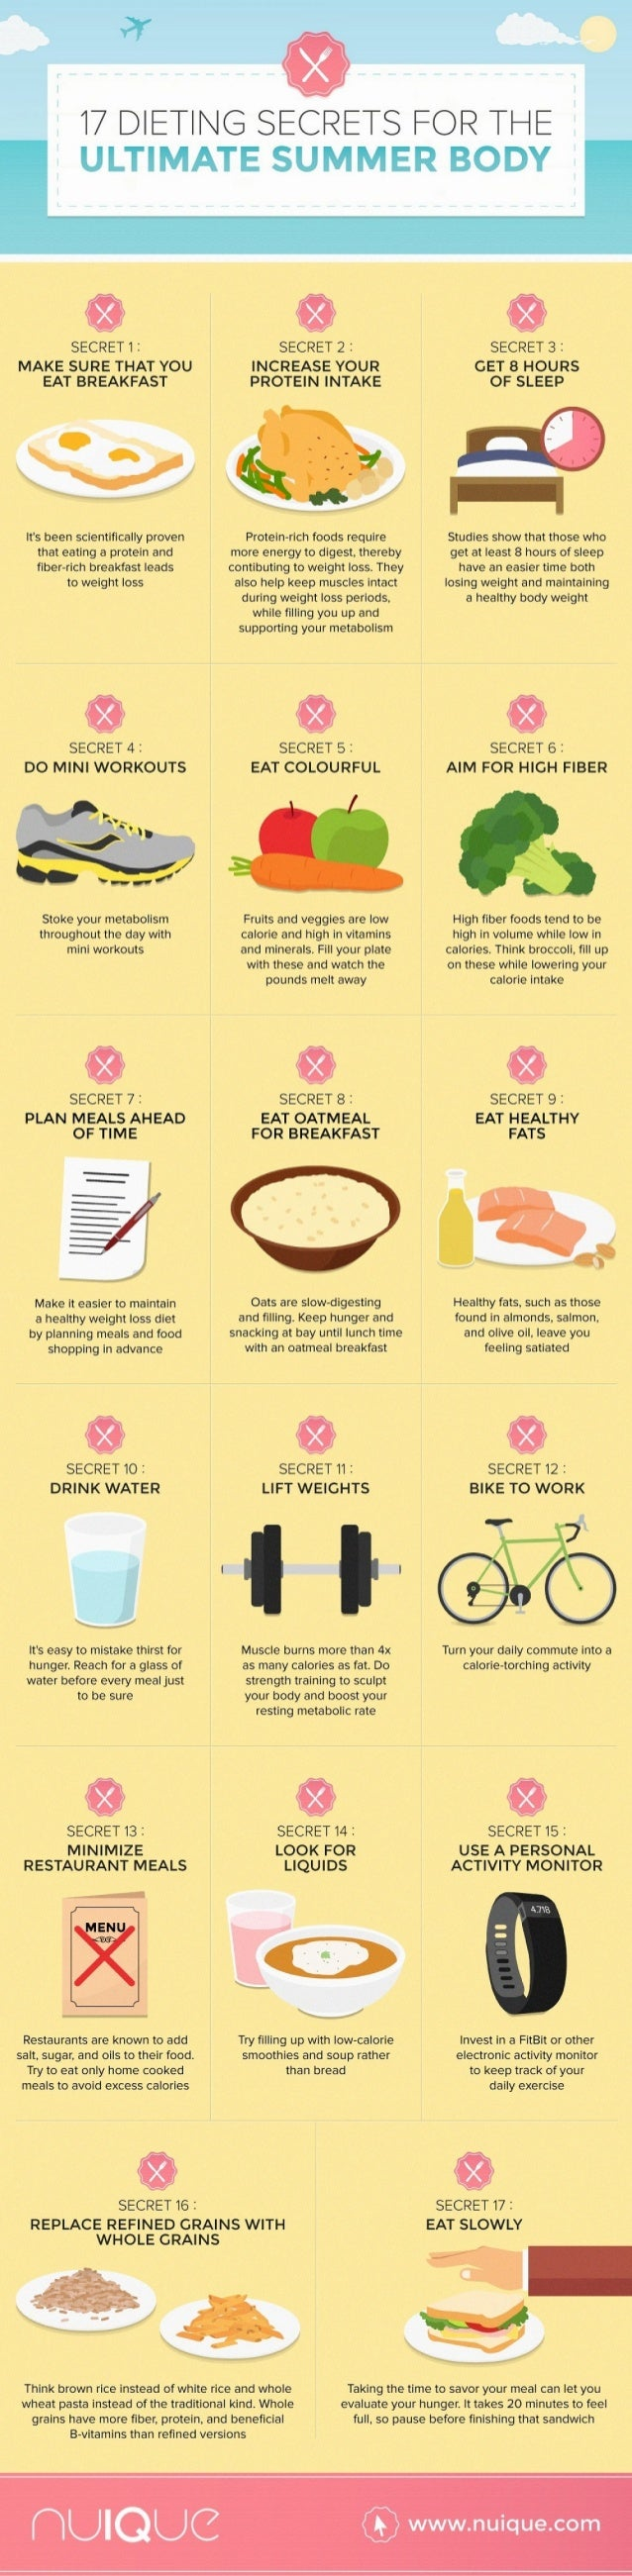 l7 DIETING SECRETS EOR THE  SECRET 1 I SECRET 2: SECRET 3: MAKE SURE THAT YOU INCREASE YOUR GET 8 HOURS PROTEIN INTAKE OF ...